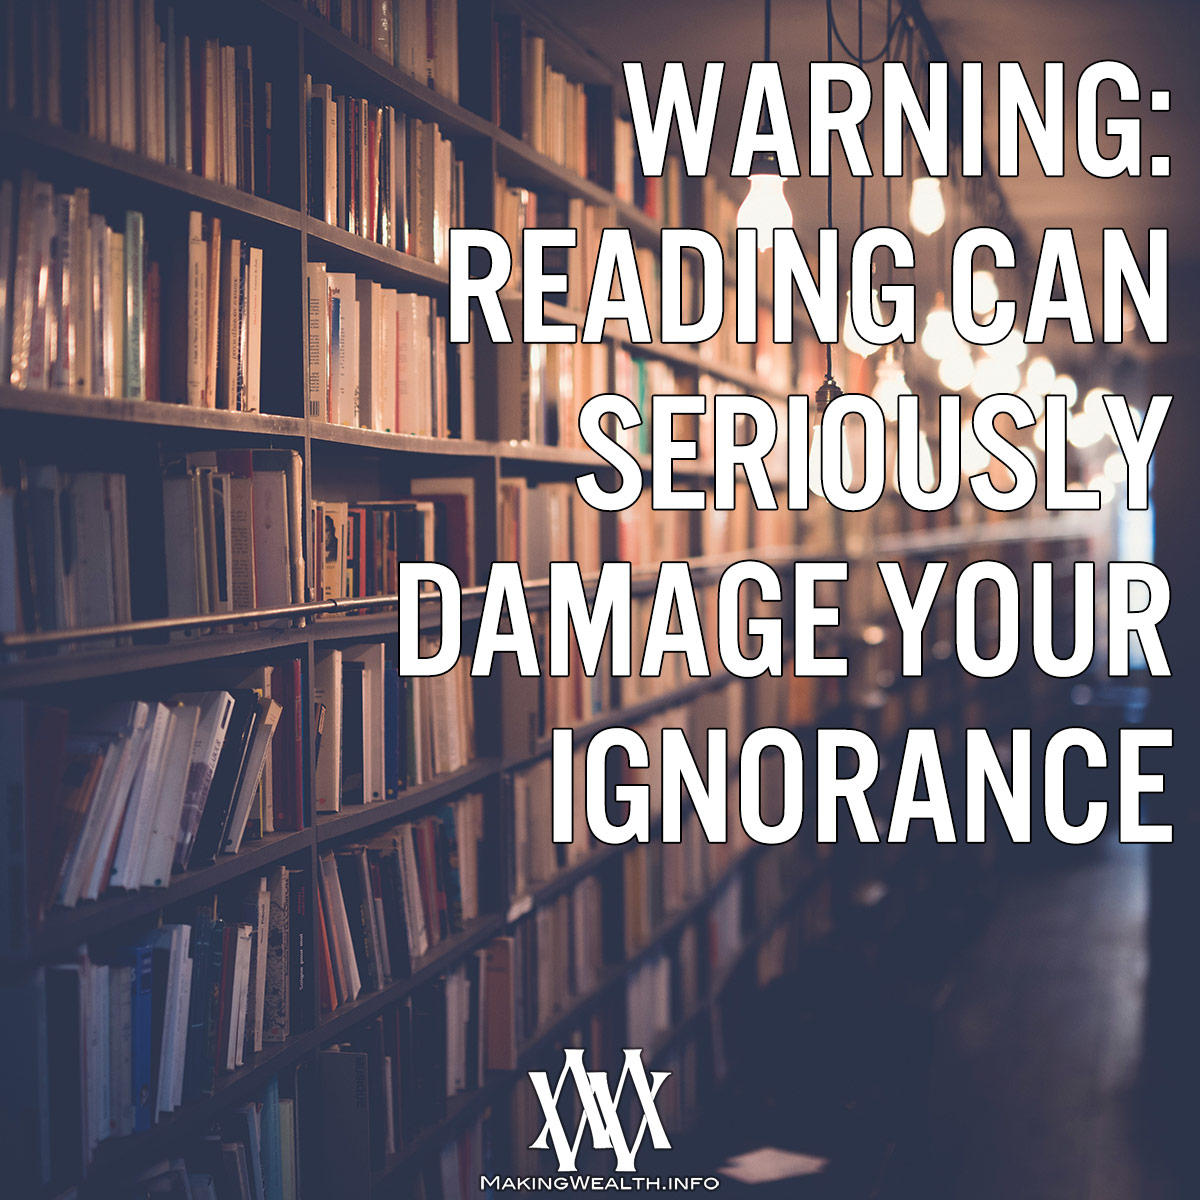 Warning - Reading Can Seriously Damage Your Ignorance